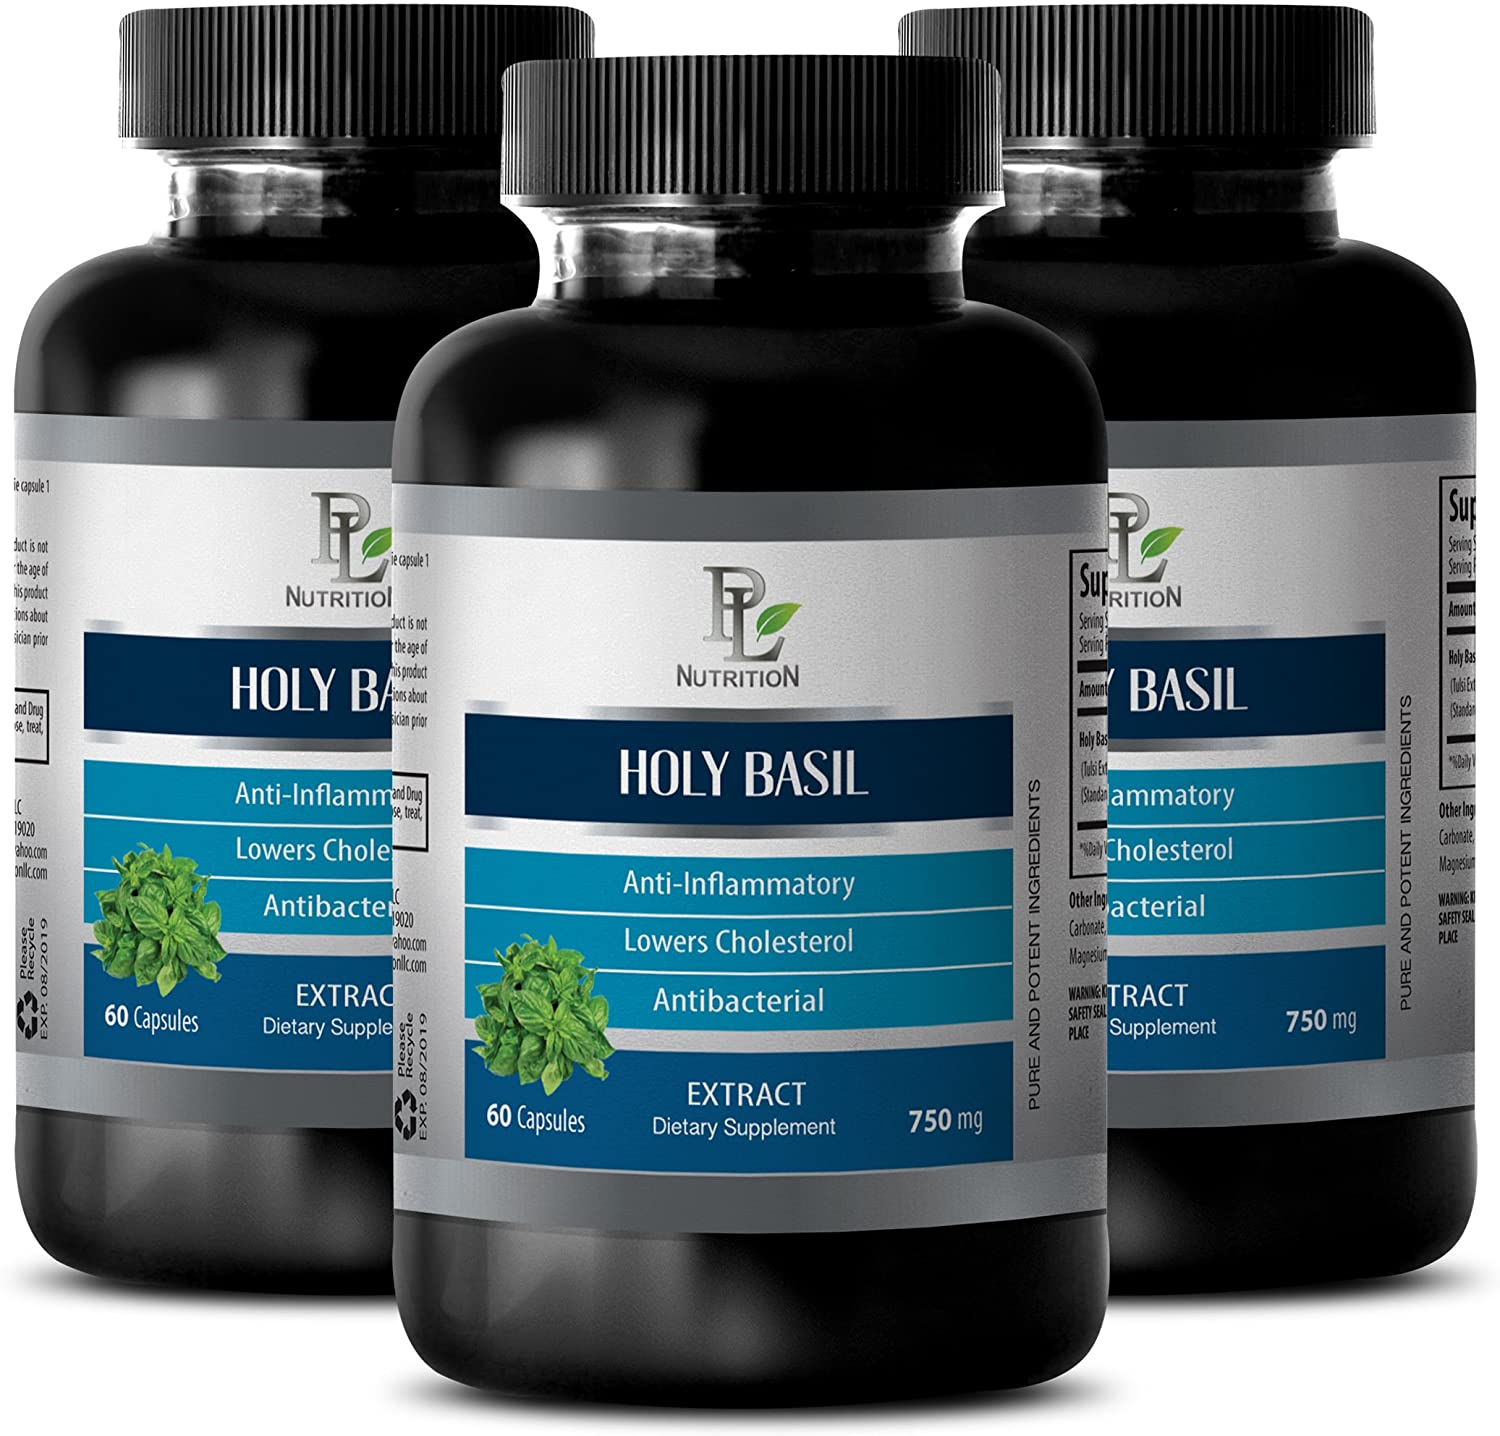 Immune System Supplement and Energy - HOLY Basil Extract (Dietary Supplement) - Basil Supplement - 3 Bottles 180 Capsules